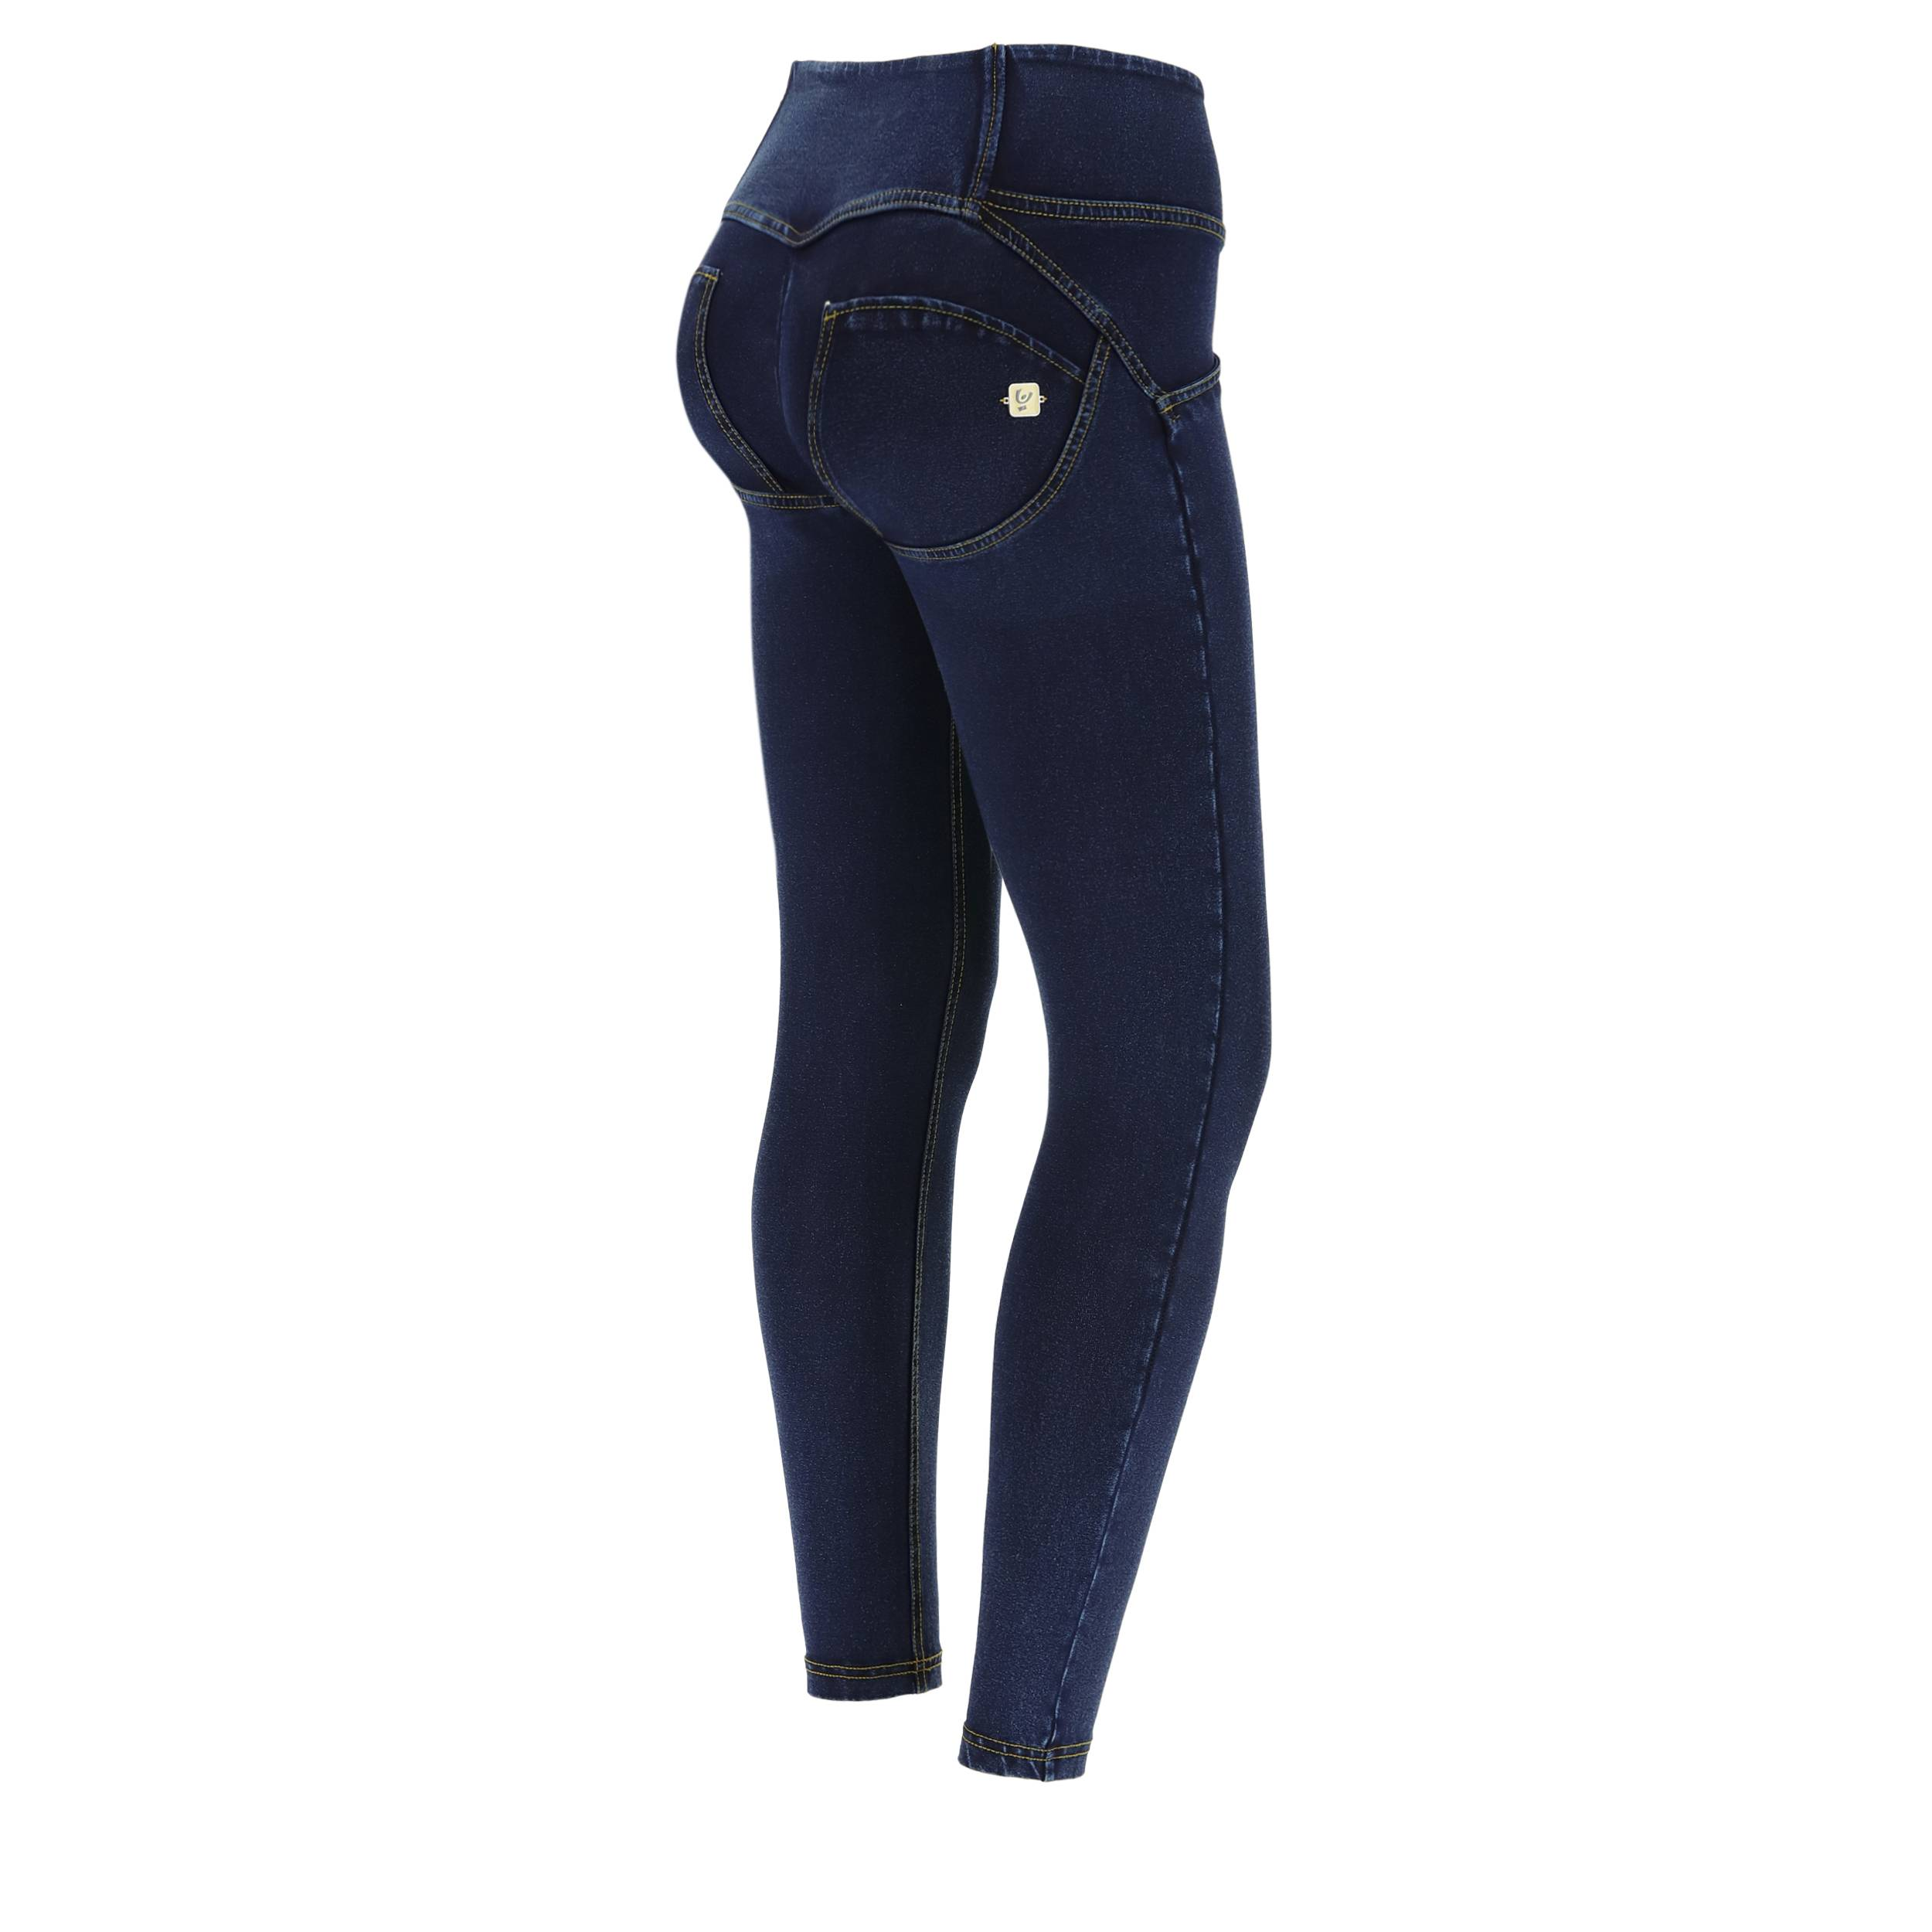 Freddy Jeggings push up WR.UP® 7/8 superskinny vita media Jeans Scuro-Cuciture Gialle